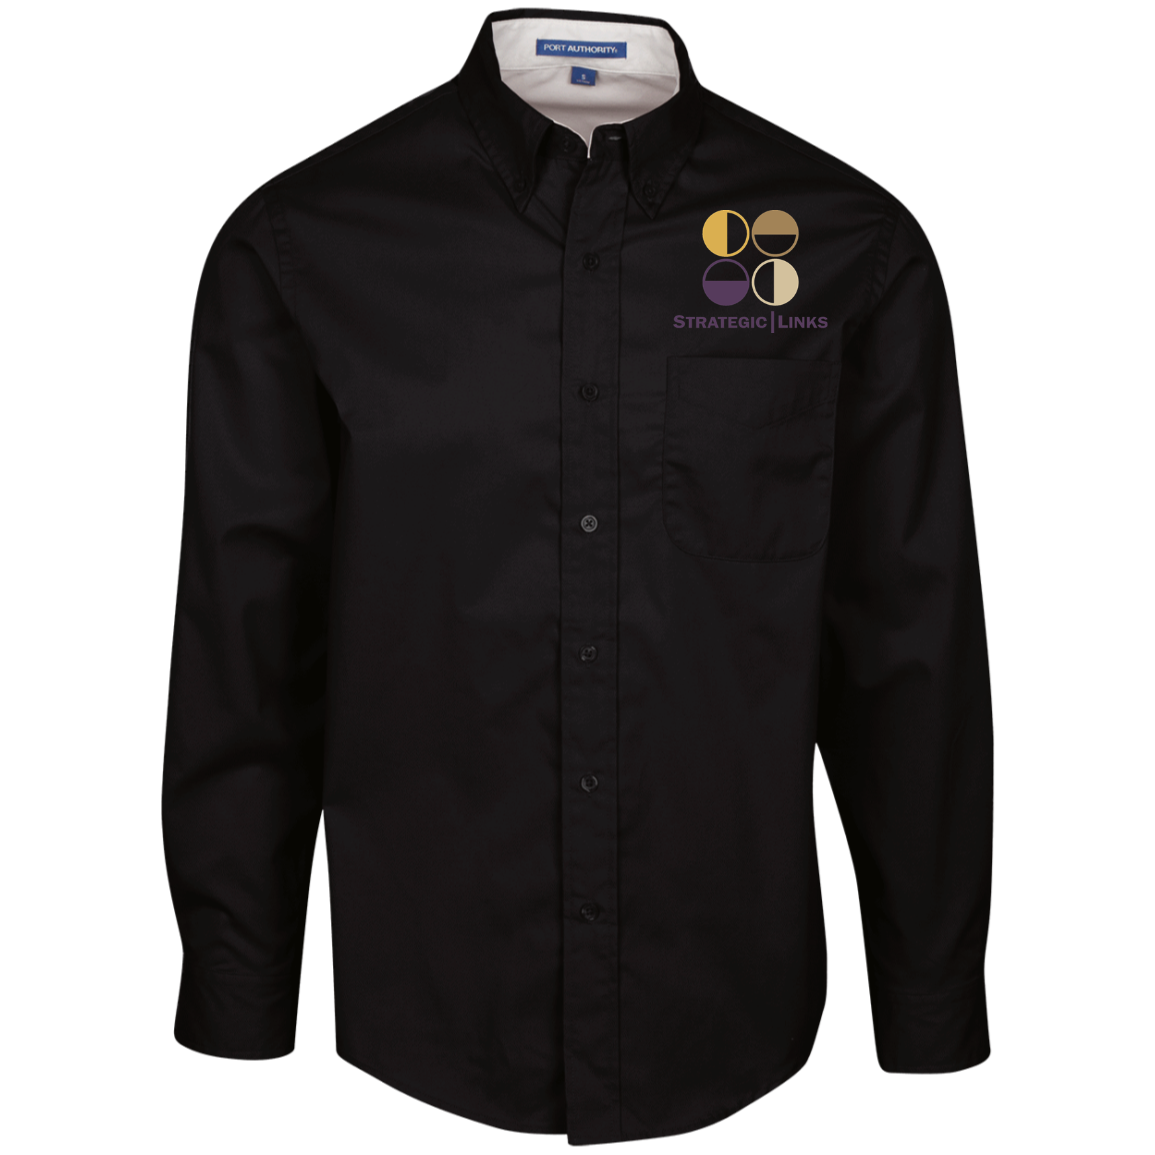 Strategic Links S608 Port Authority Men's LS Dress Shirt